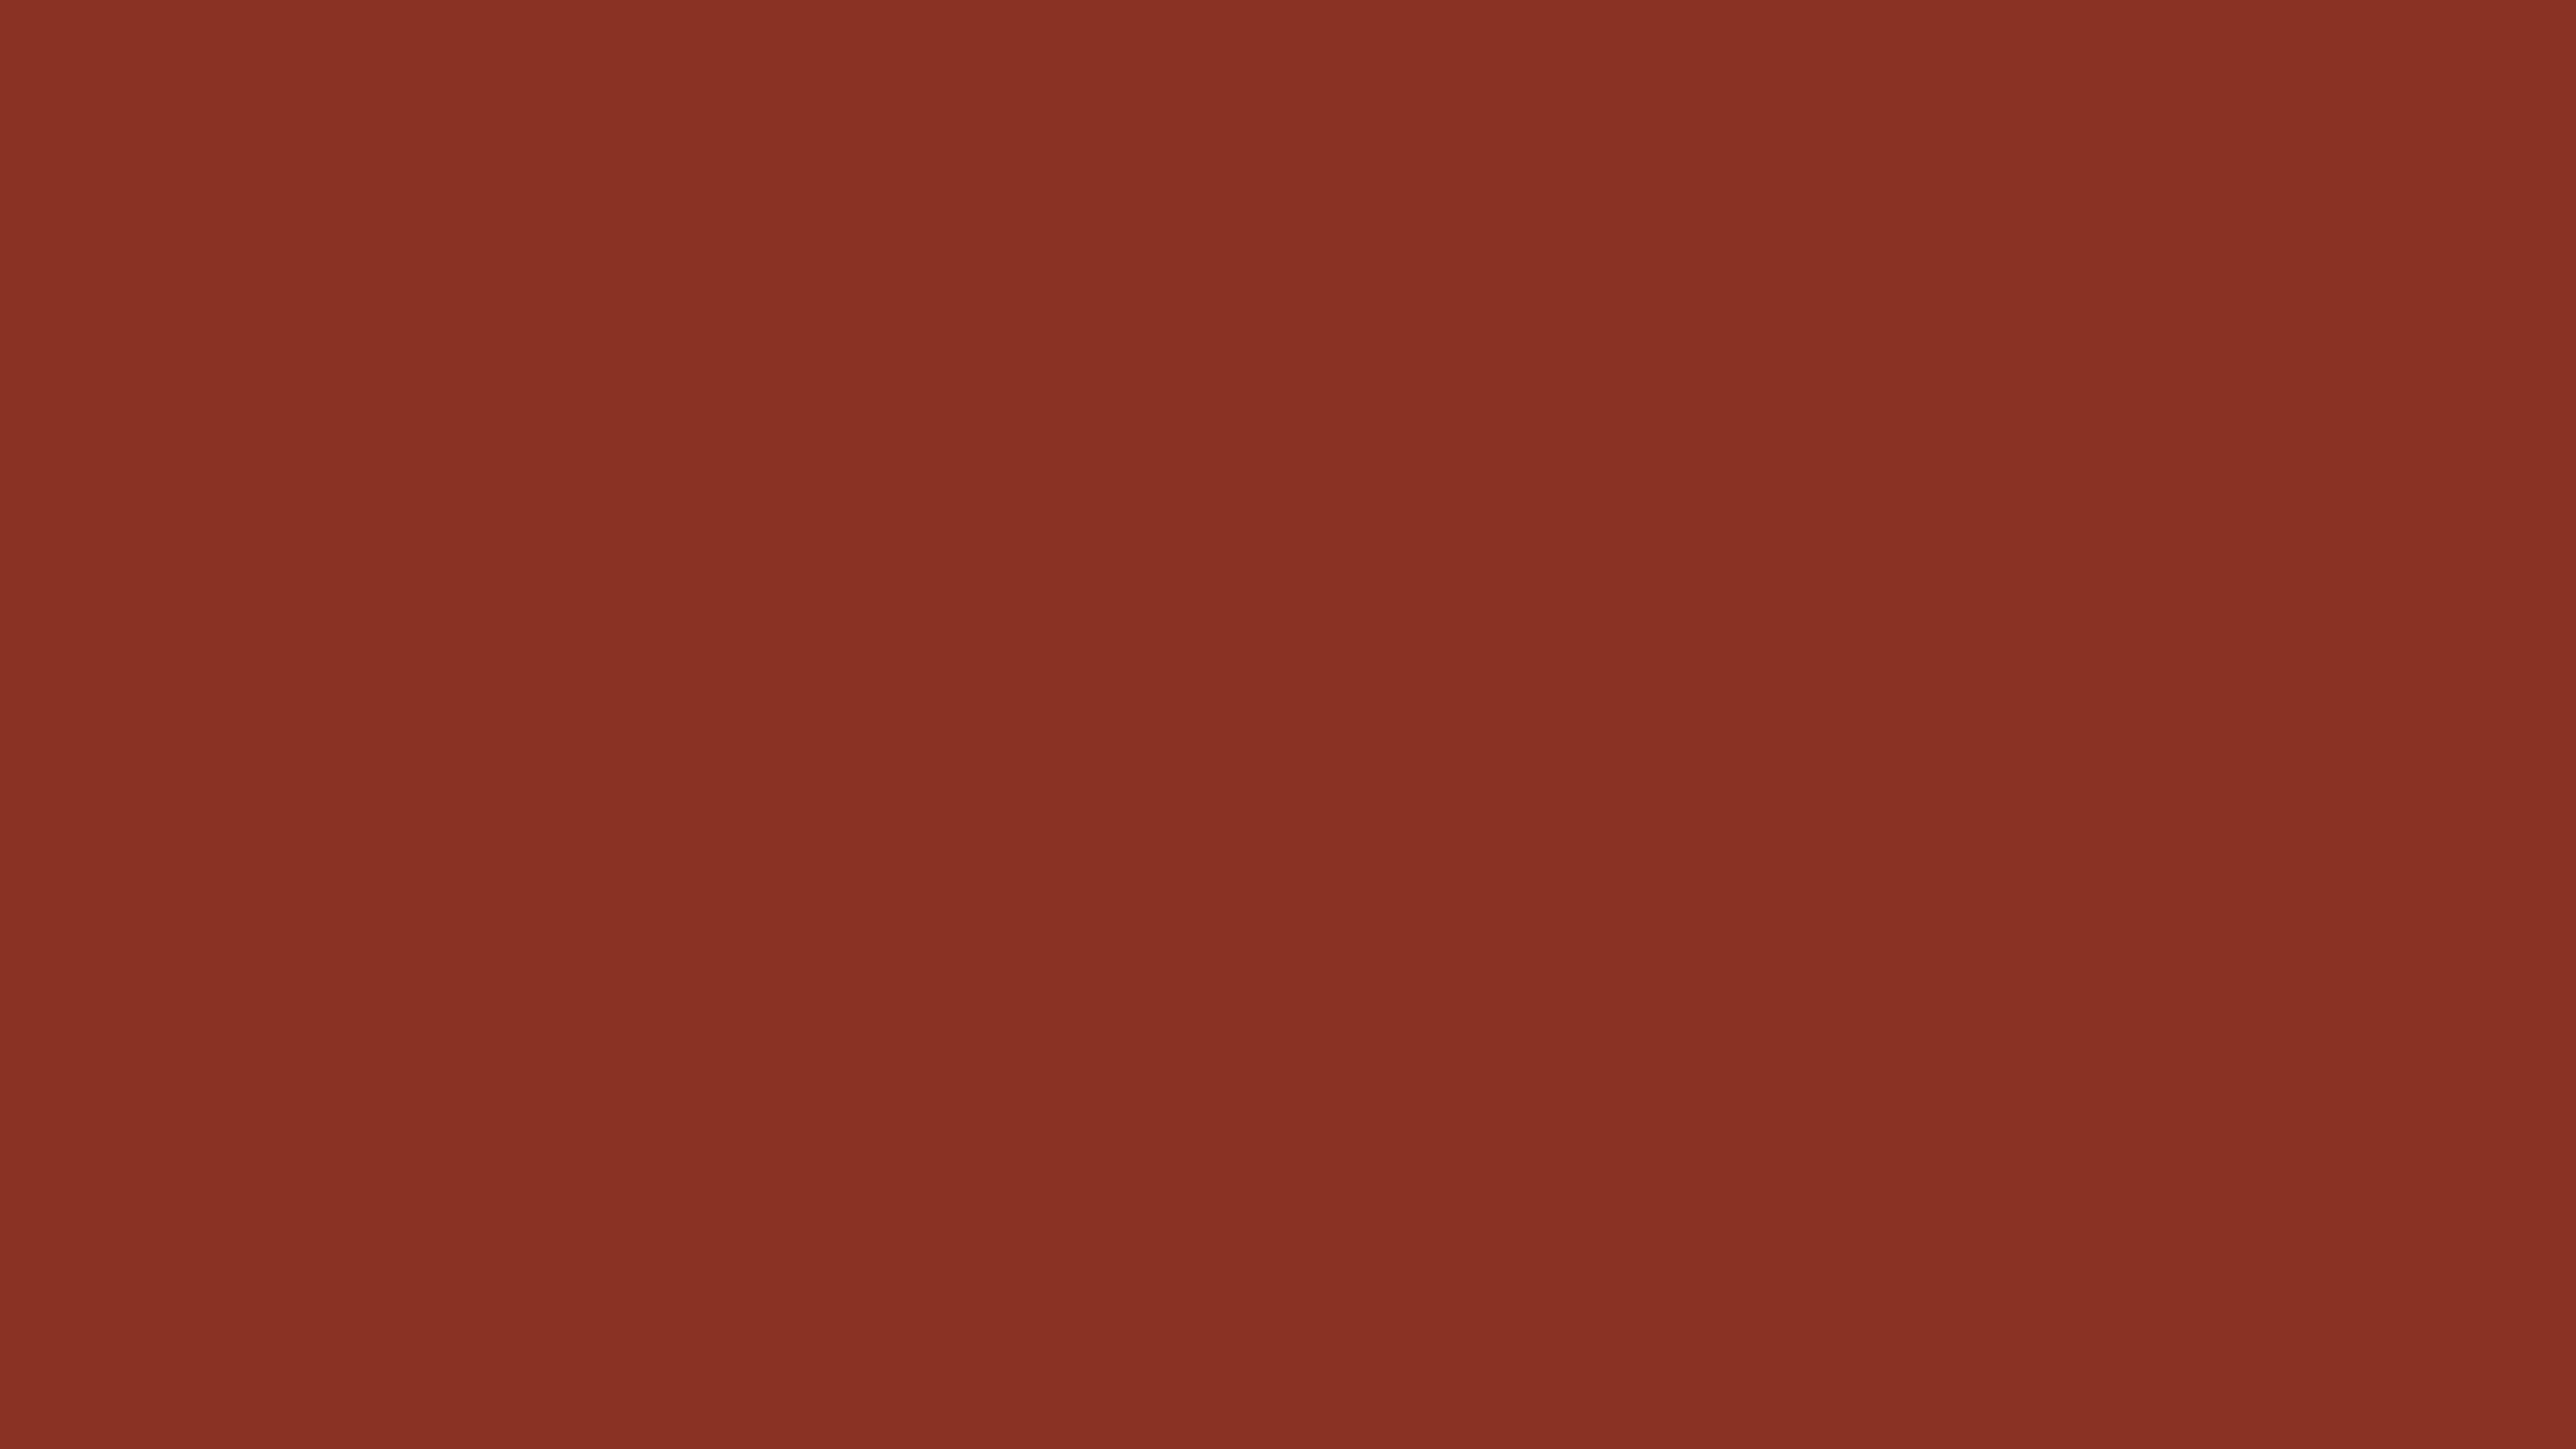 4096x2304 Burnt Umber Solid Color Background